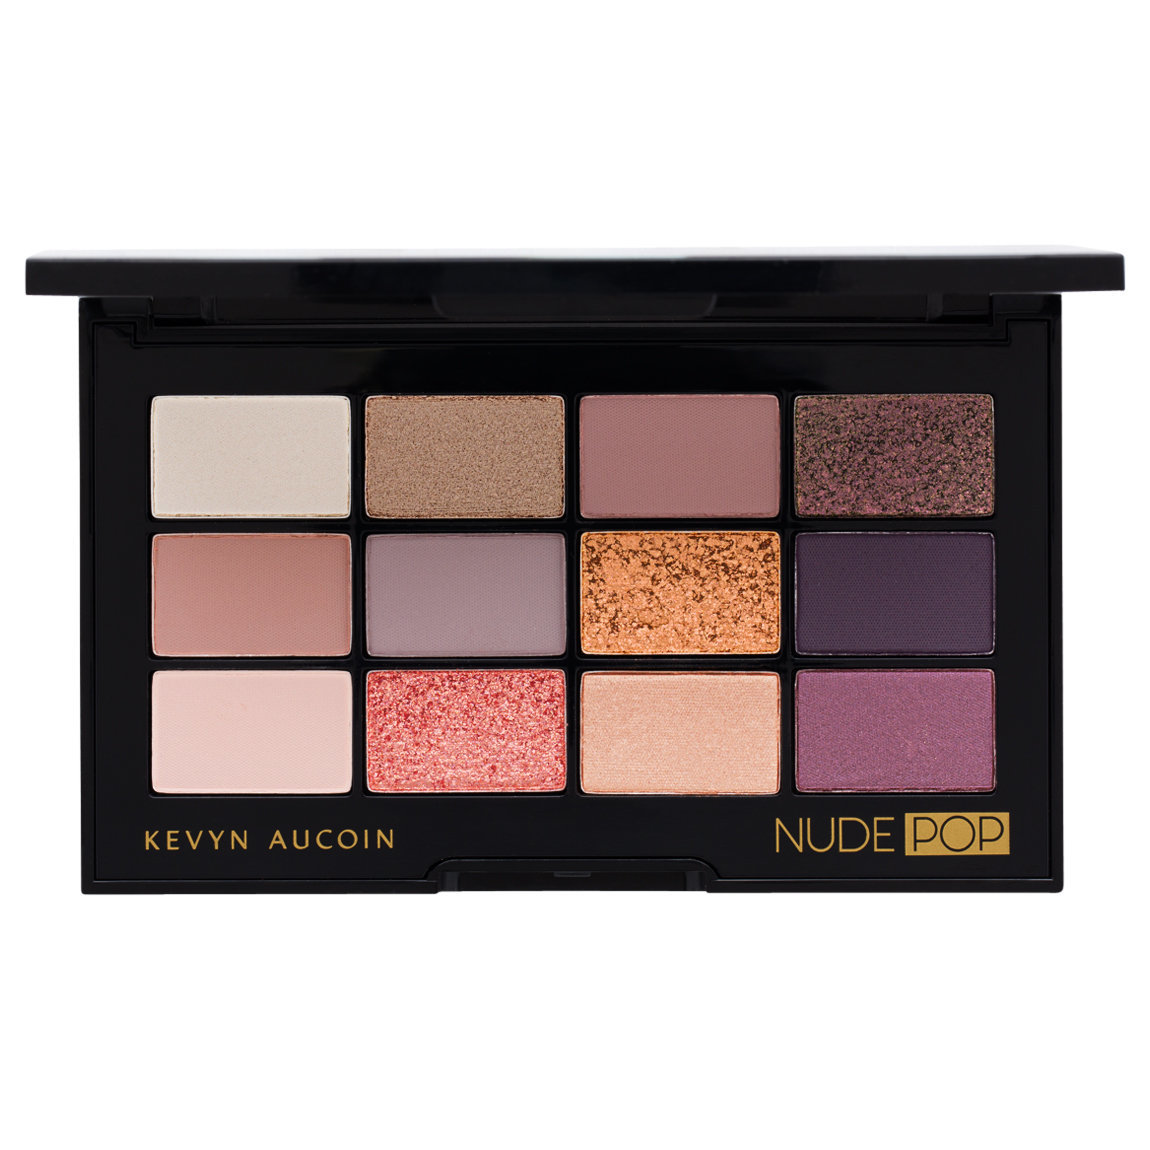 Kevyn Aucoin Nude Pop Pro Eyeshadow Palette product smear.